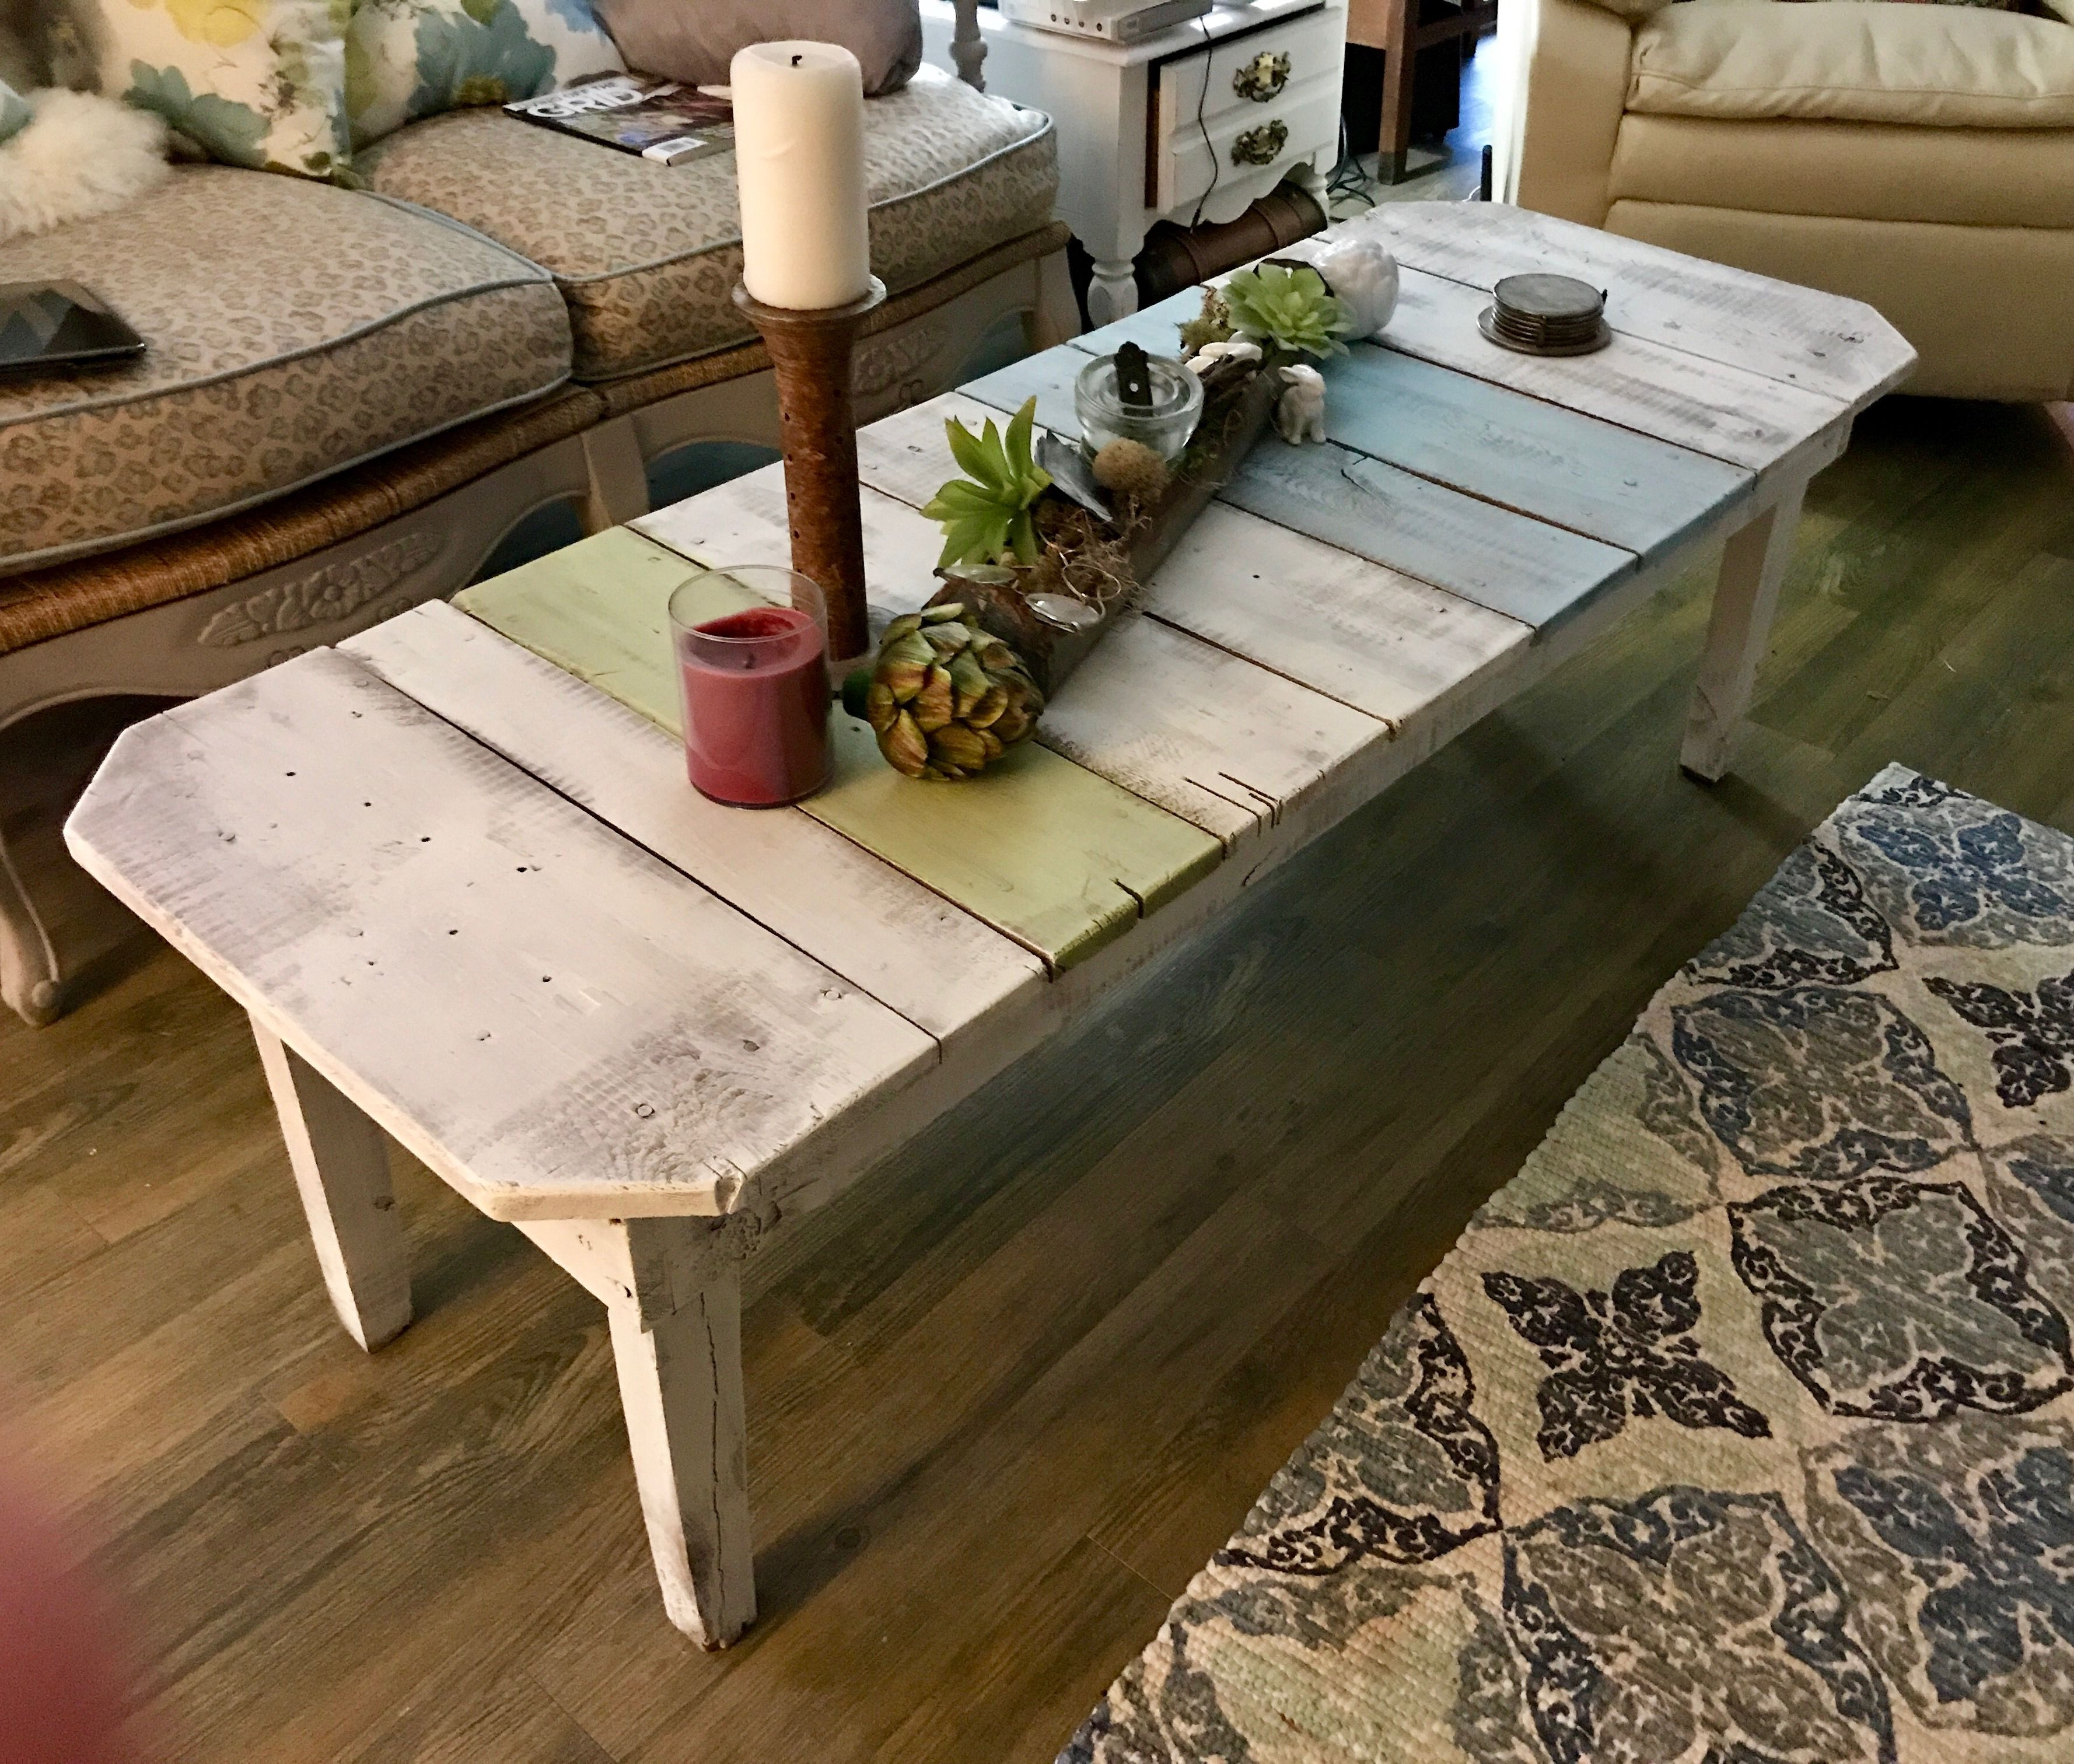 Fun Repurposed Wooden Plank Table Shabby Chic Farmhouse Chic Shabby Chic Farmhouse Plank Table Decor [ 3024 x 3555 Pixel ]